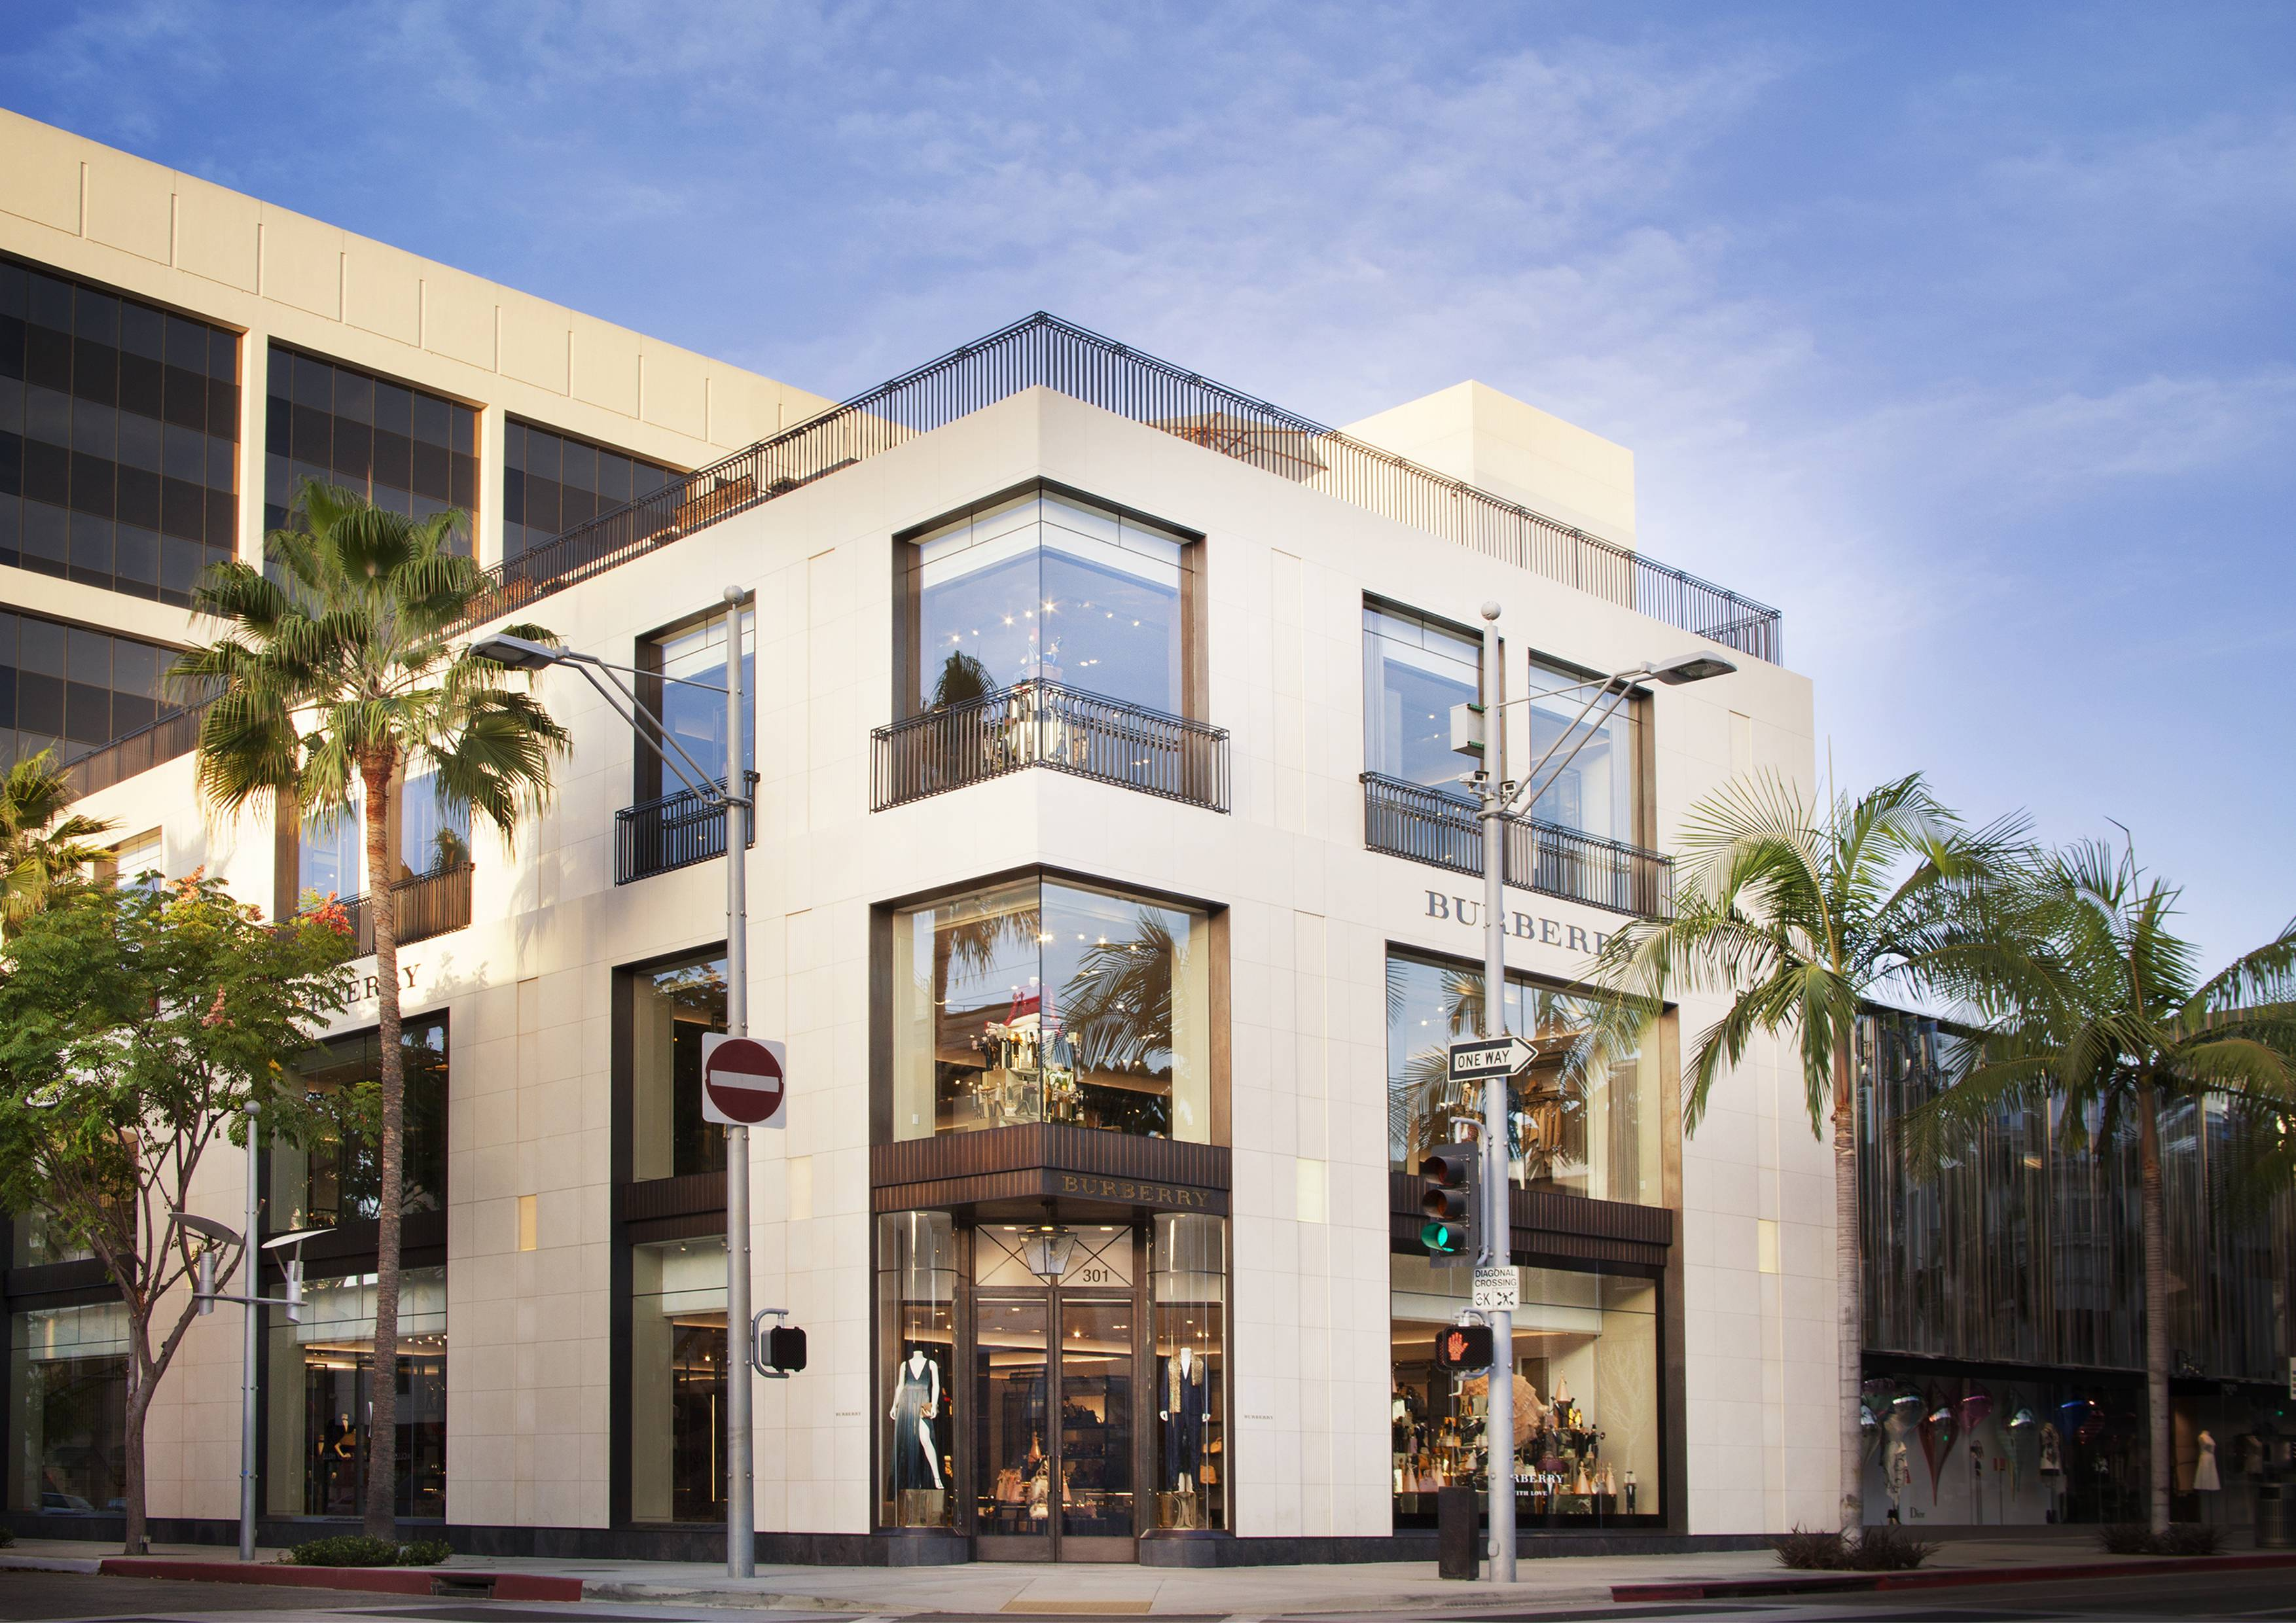 Burberry Rodeo Drive Location